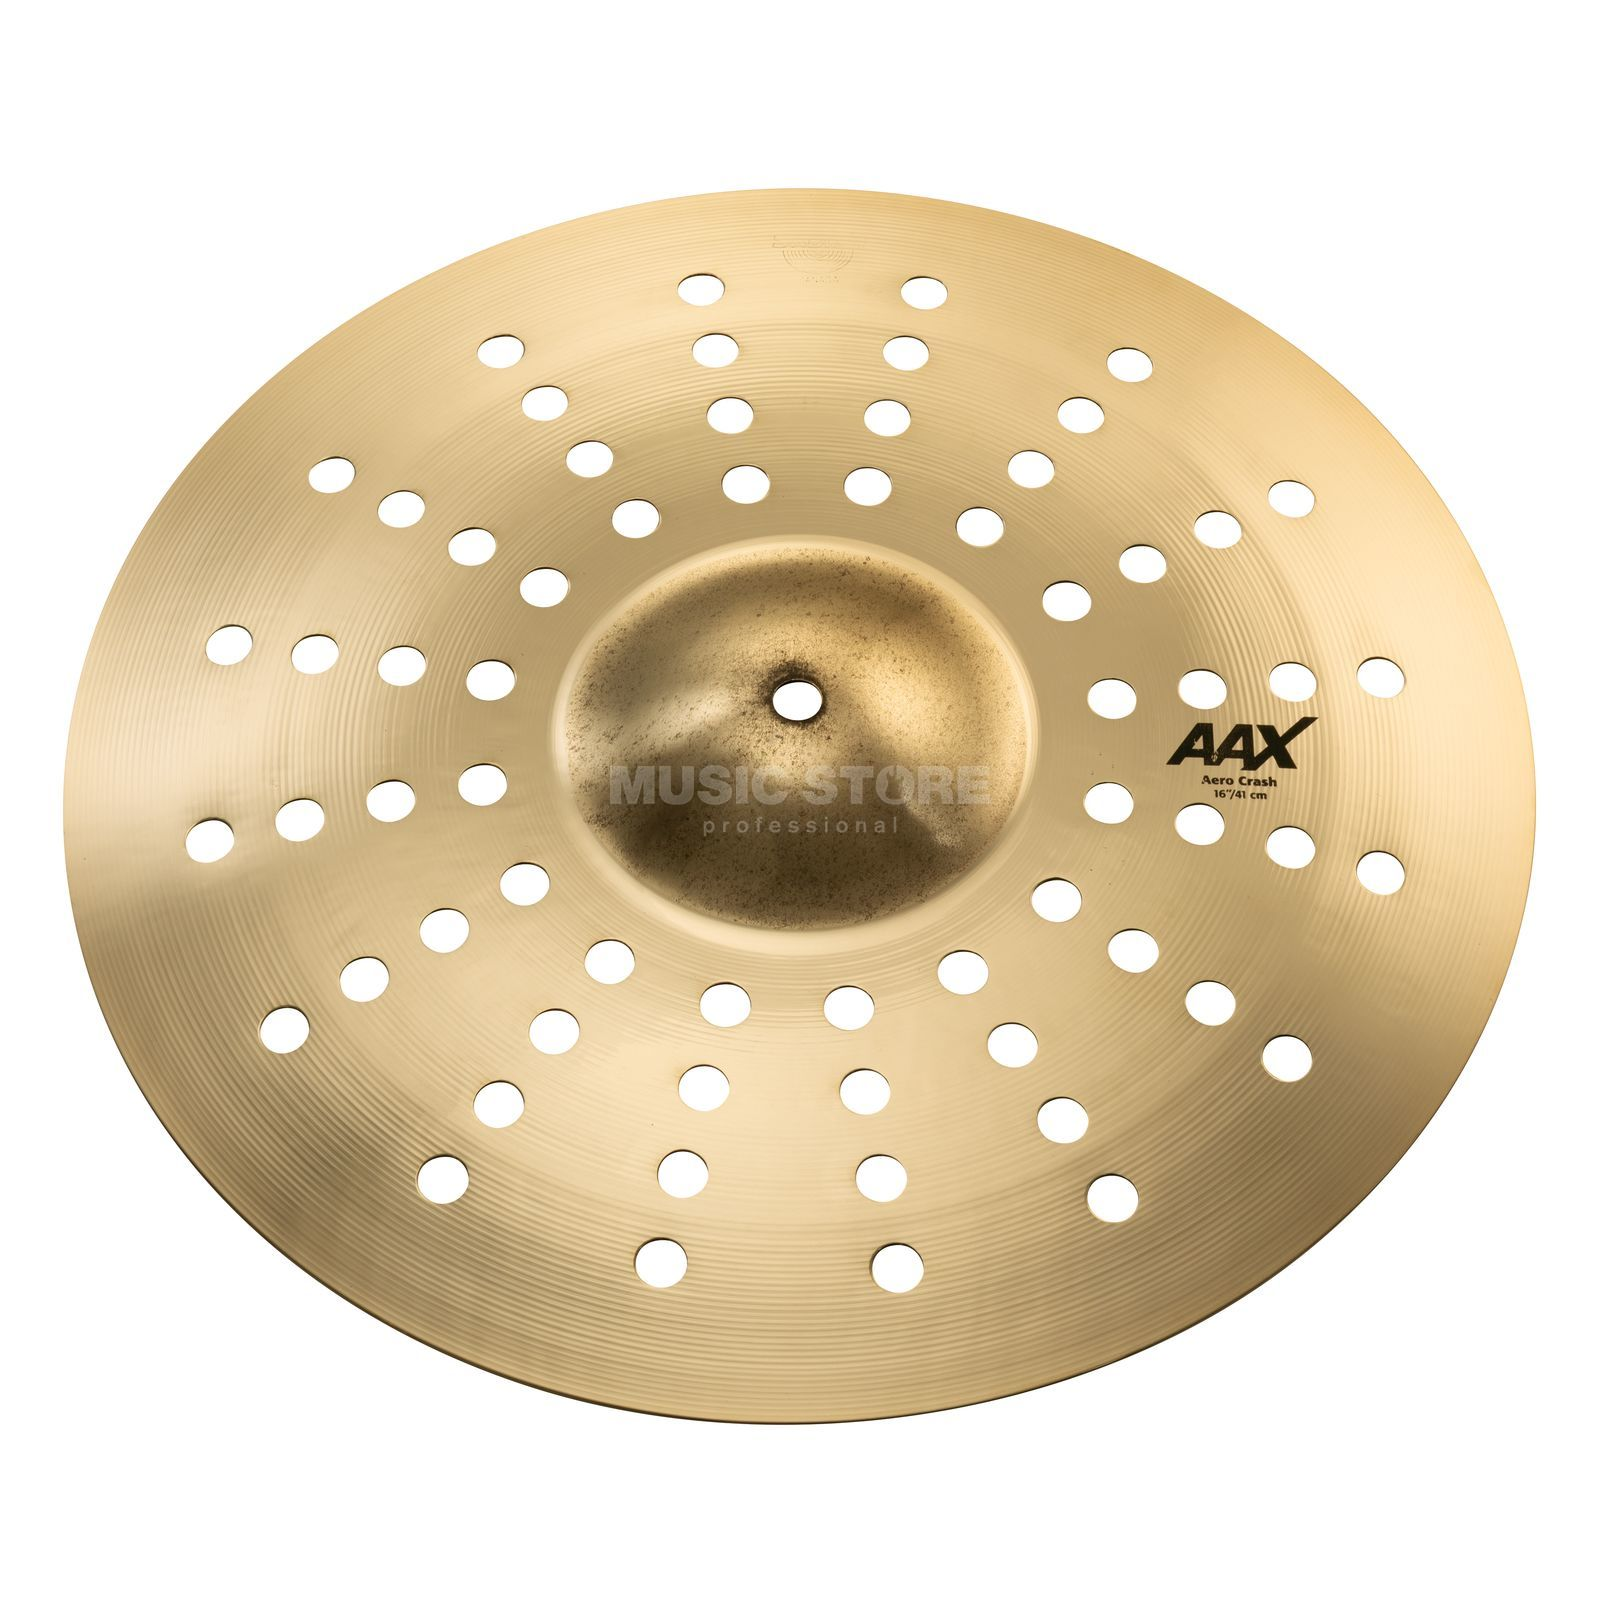 "Sabian AAX Aero Crash 16"", Brilliant Finish Produktbild"